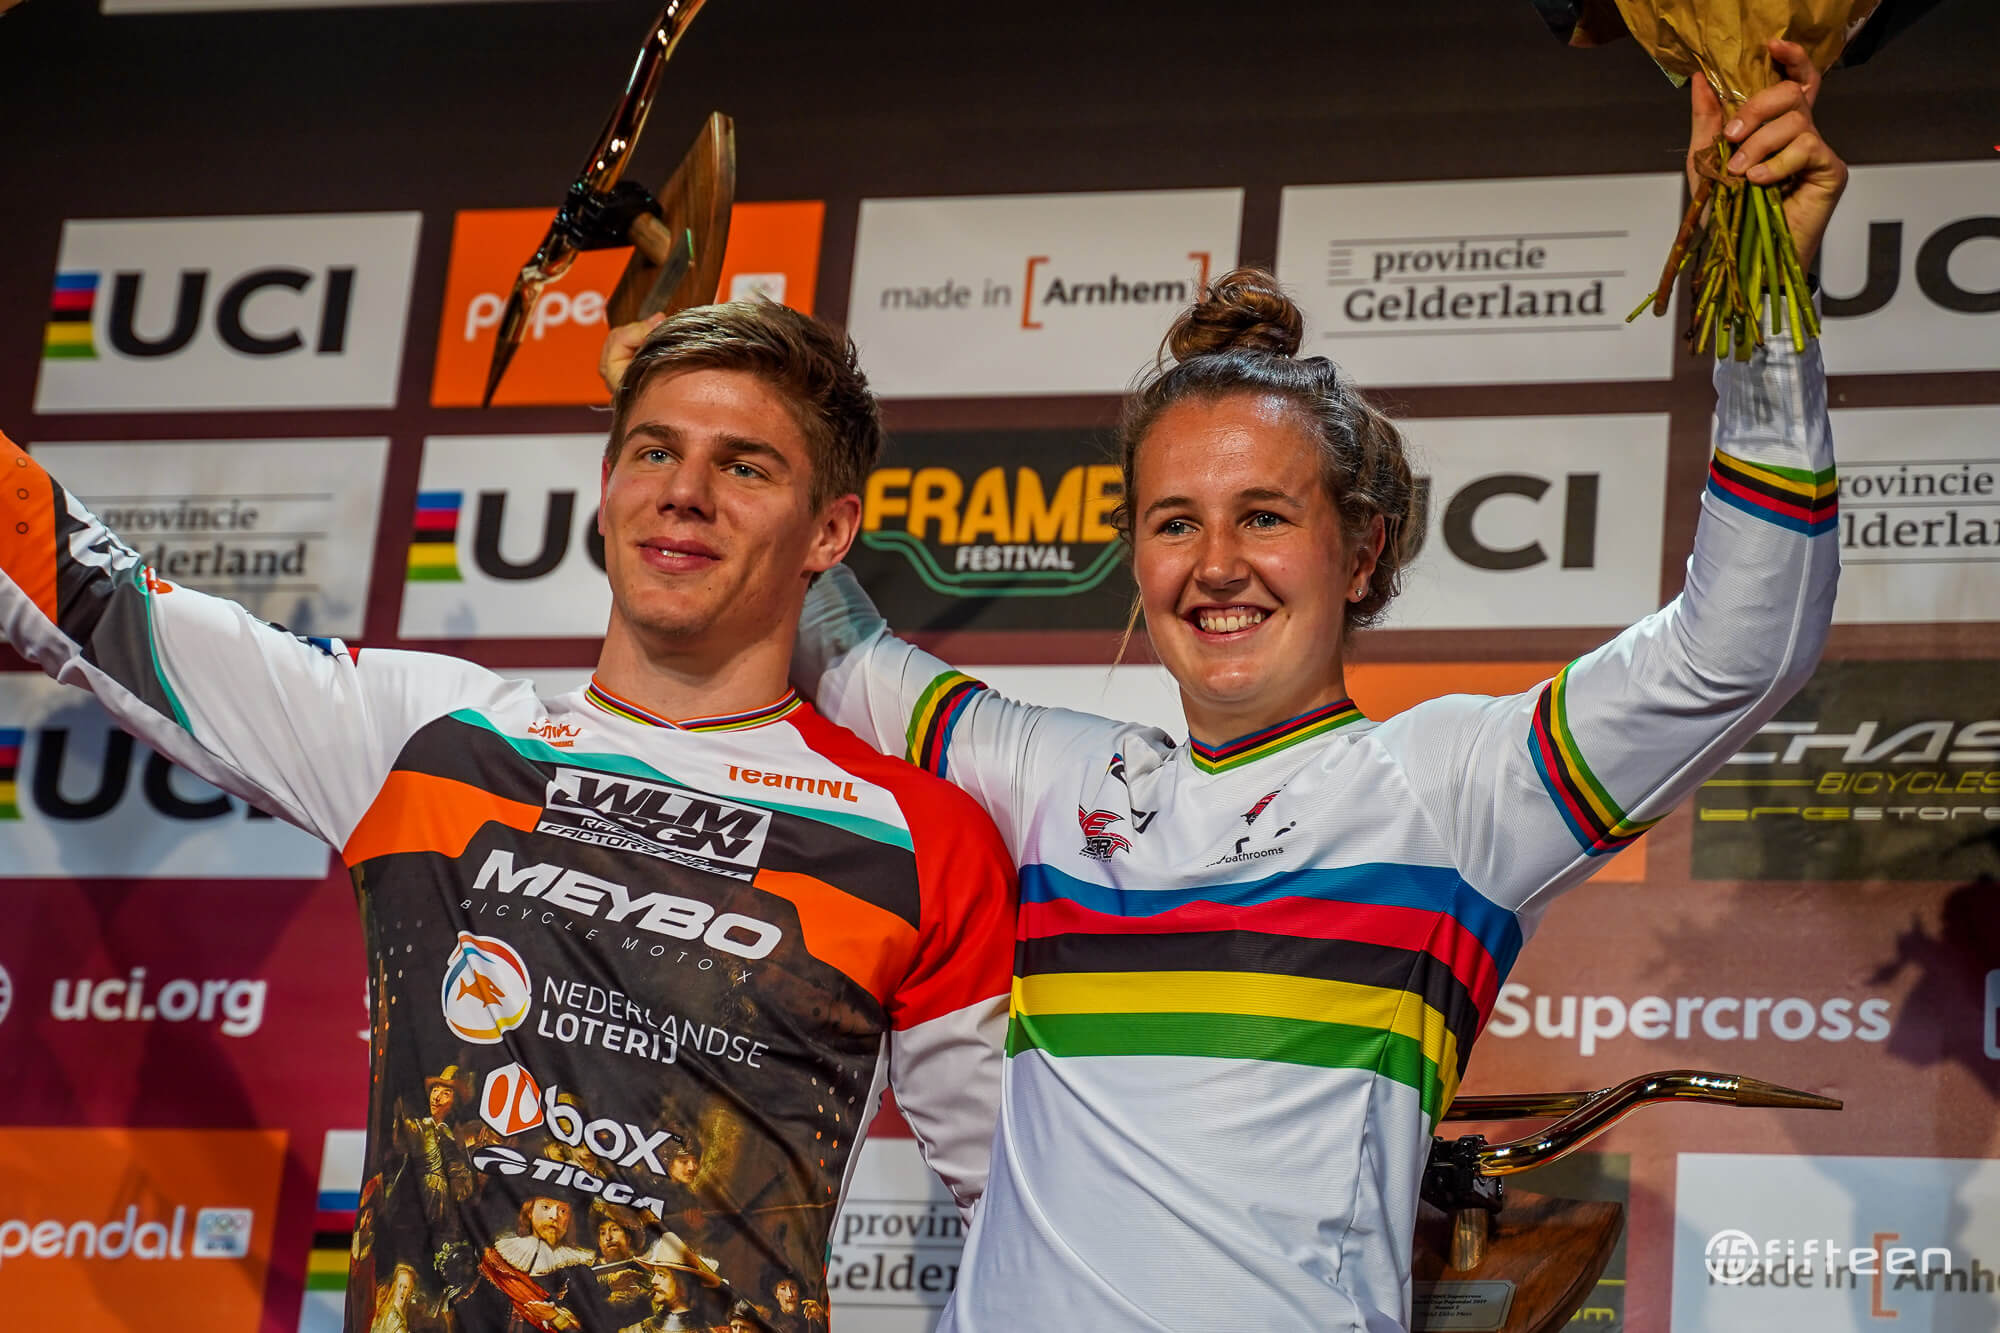 Niek and Laura 2019 Papendal World Cup - Fifteen BMX